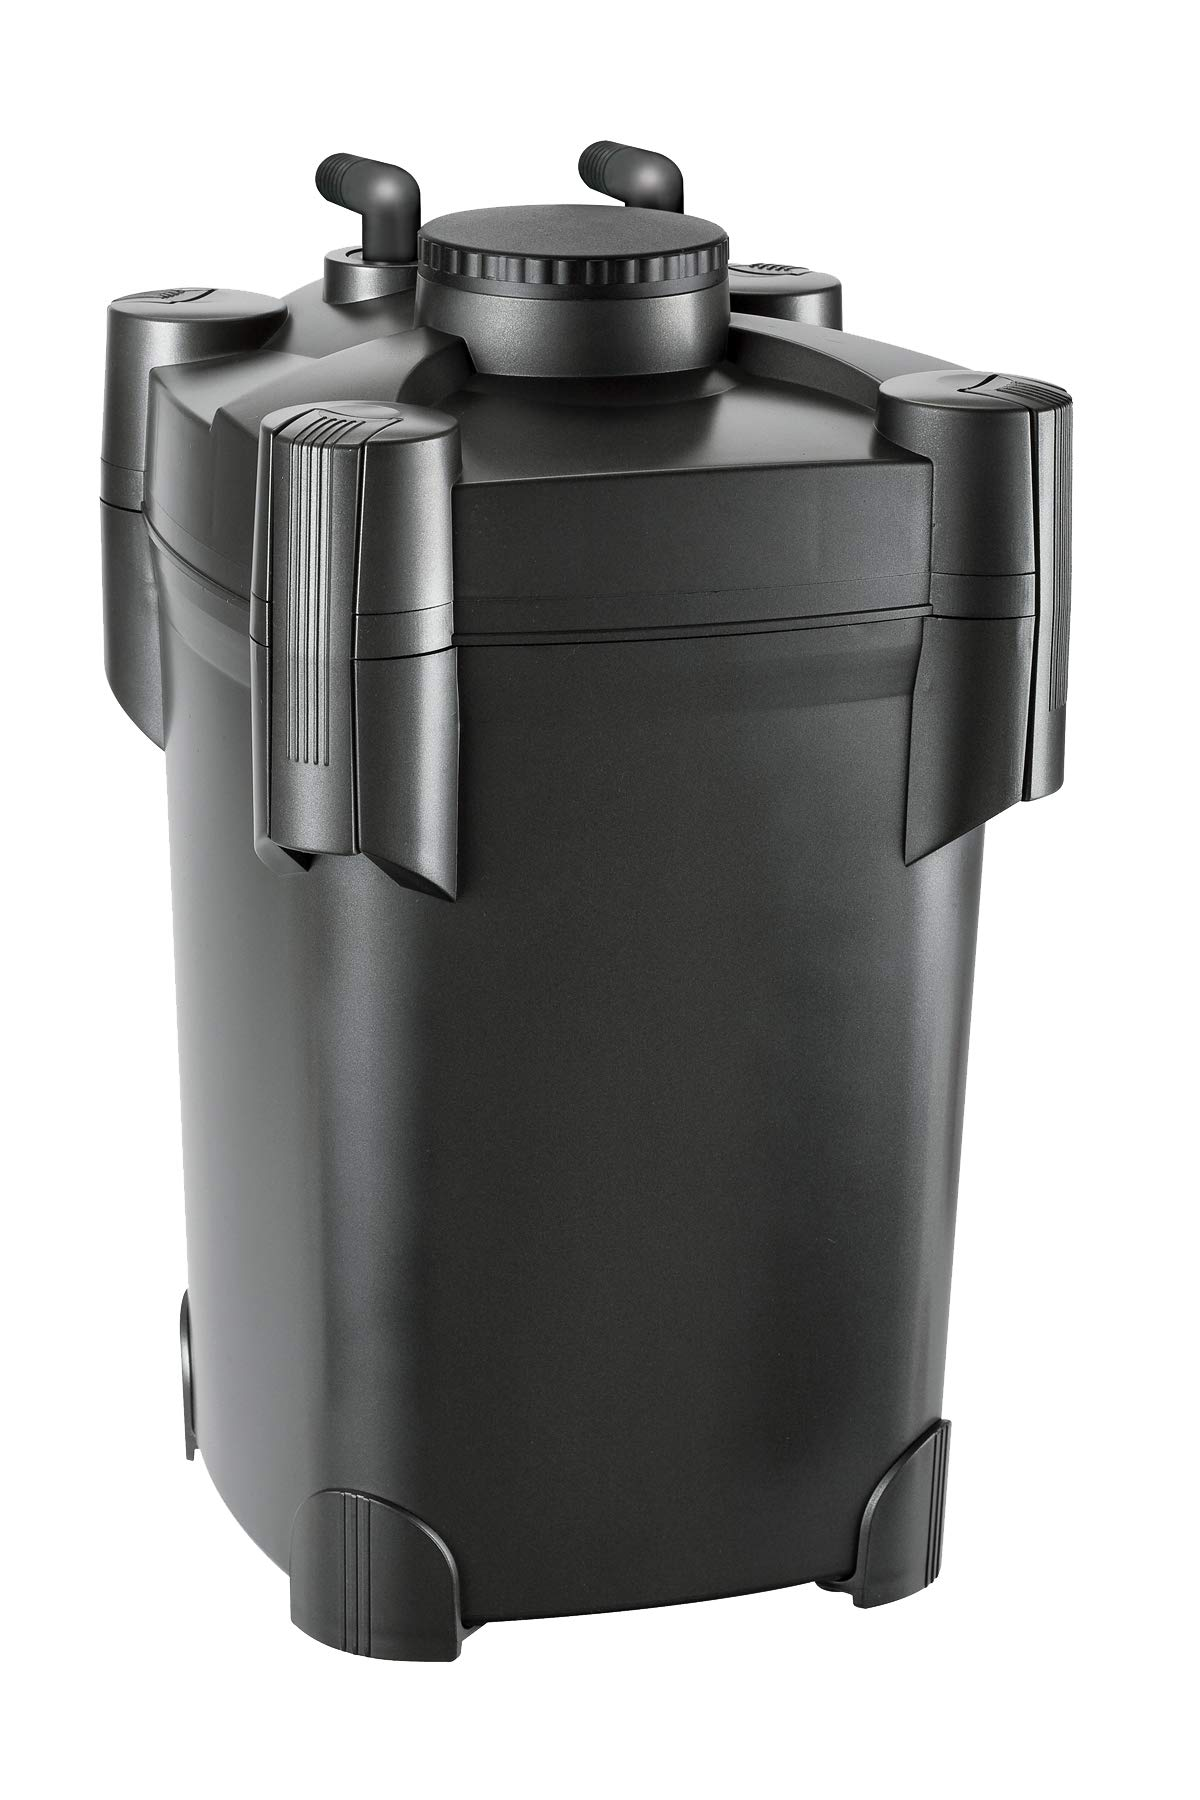 Pondmaster 5430 Danner Manufacturing Compact 1000 Gallon Small to Medium Po Pressurized Pond Filter, Black by PONDMASTER